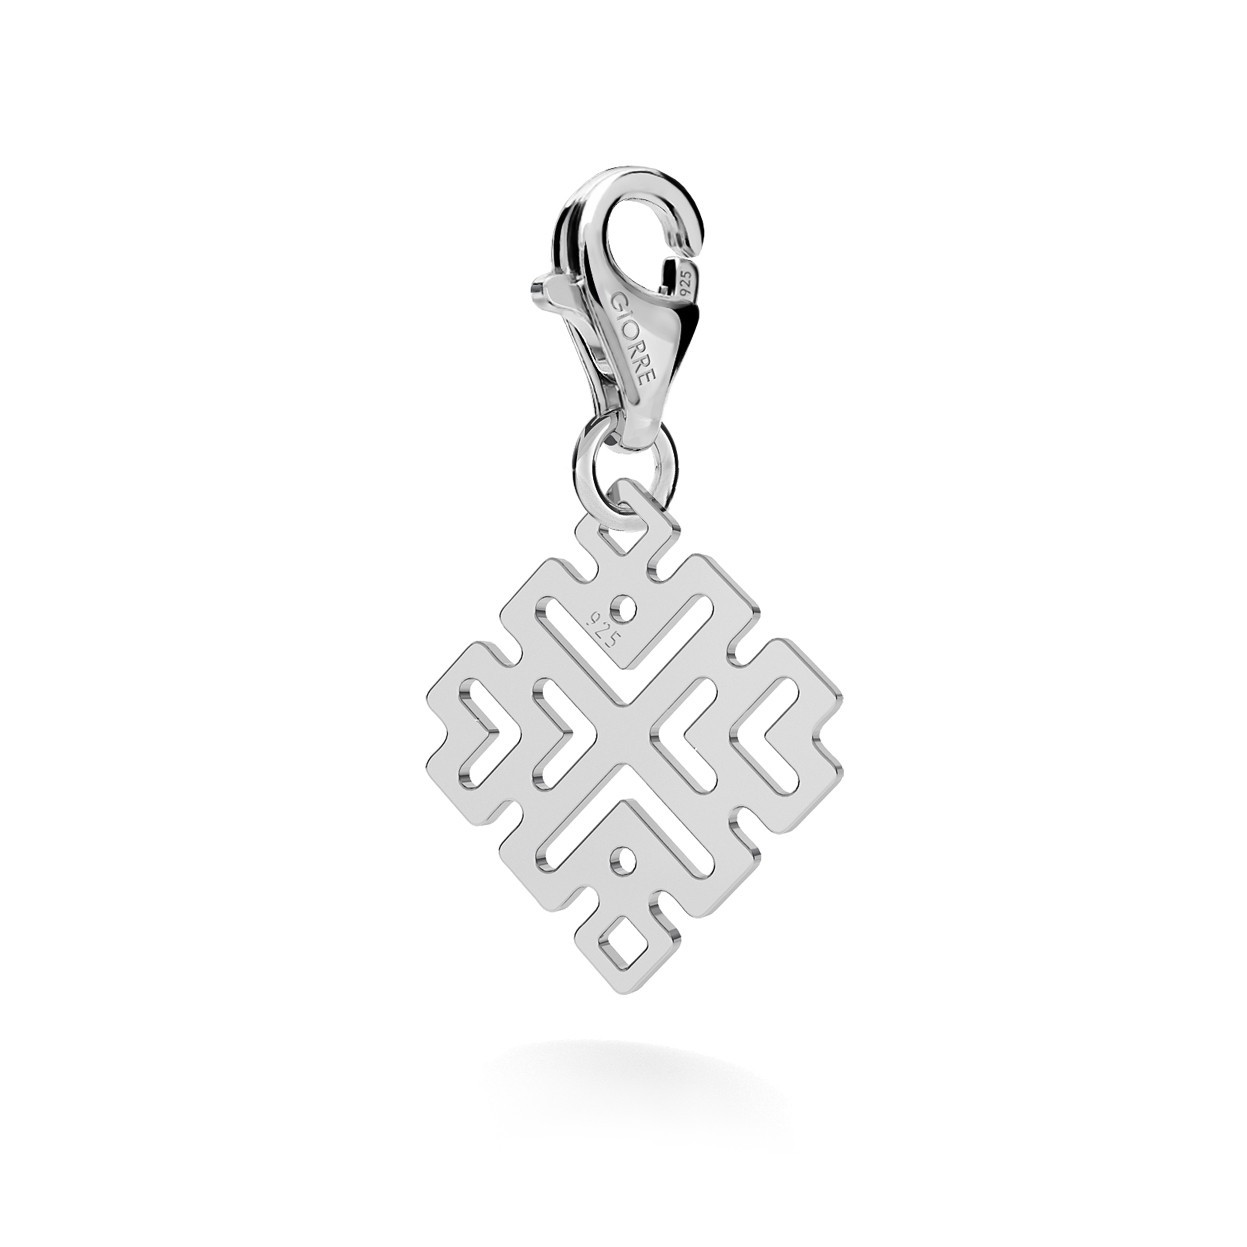 OPENWORK SQUARE, CHARMS 235